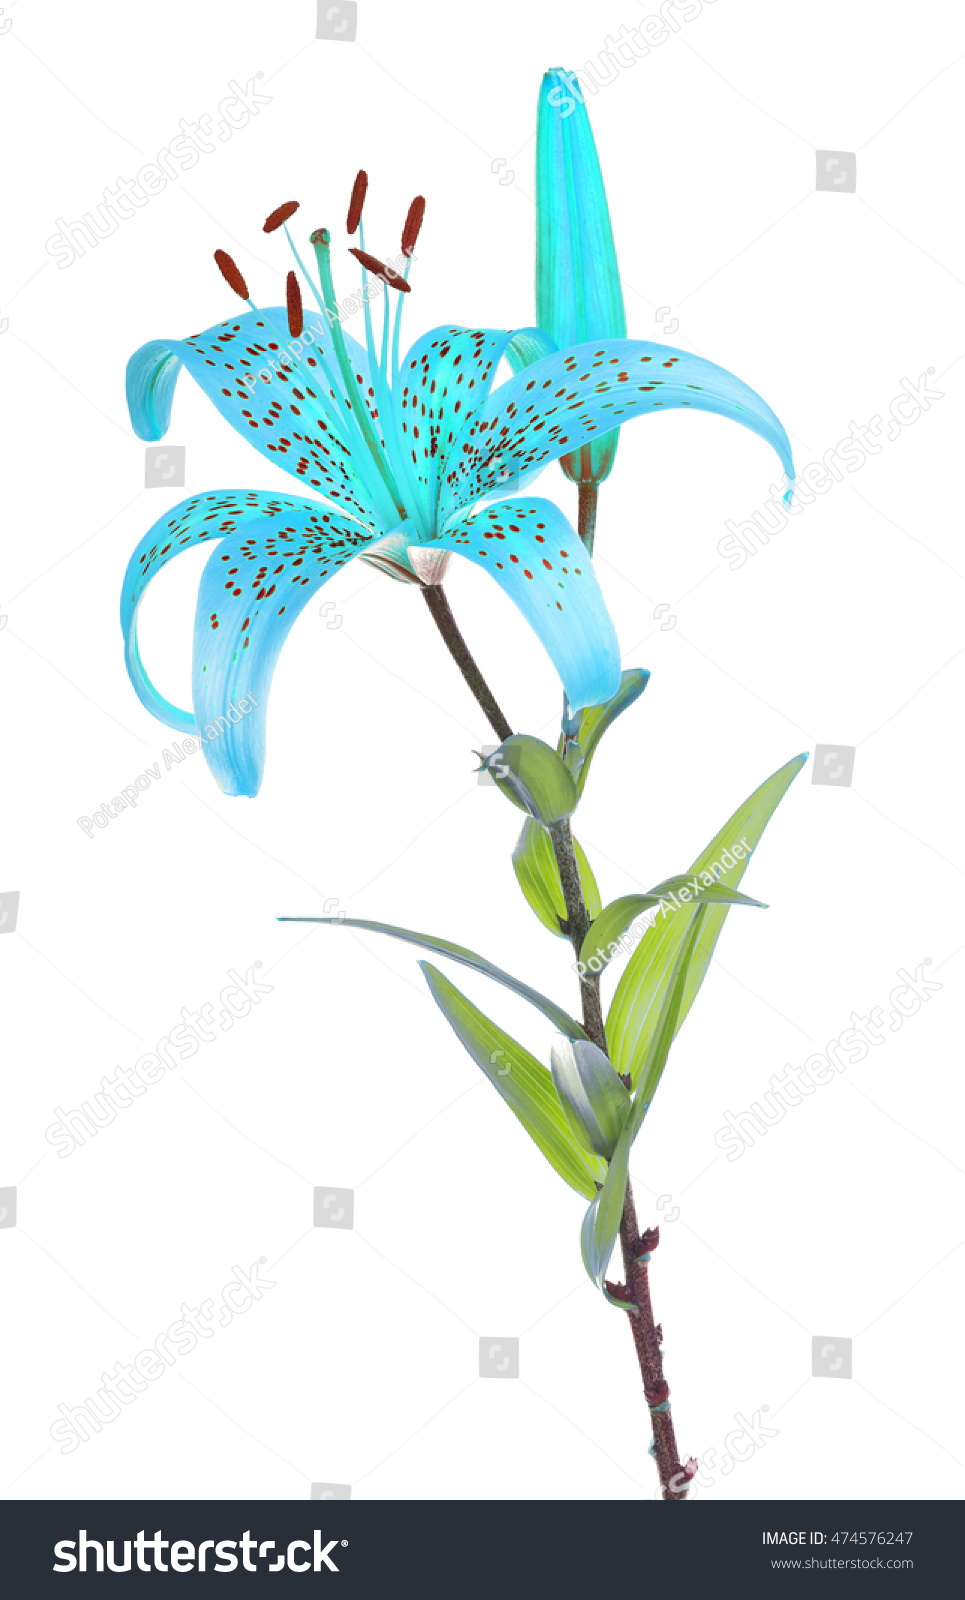 Blue lily flower isolated on white stock photo edit now 474576247 blue lily flower isolated on white background izmirmasajfo